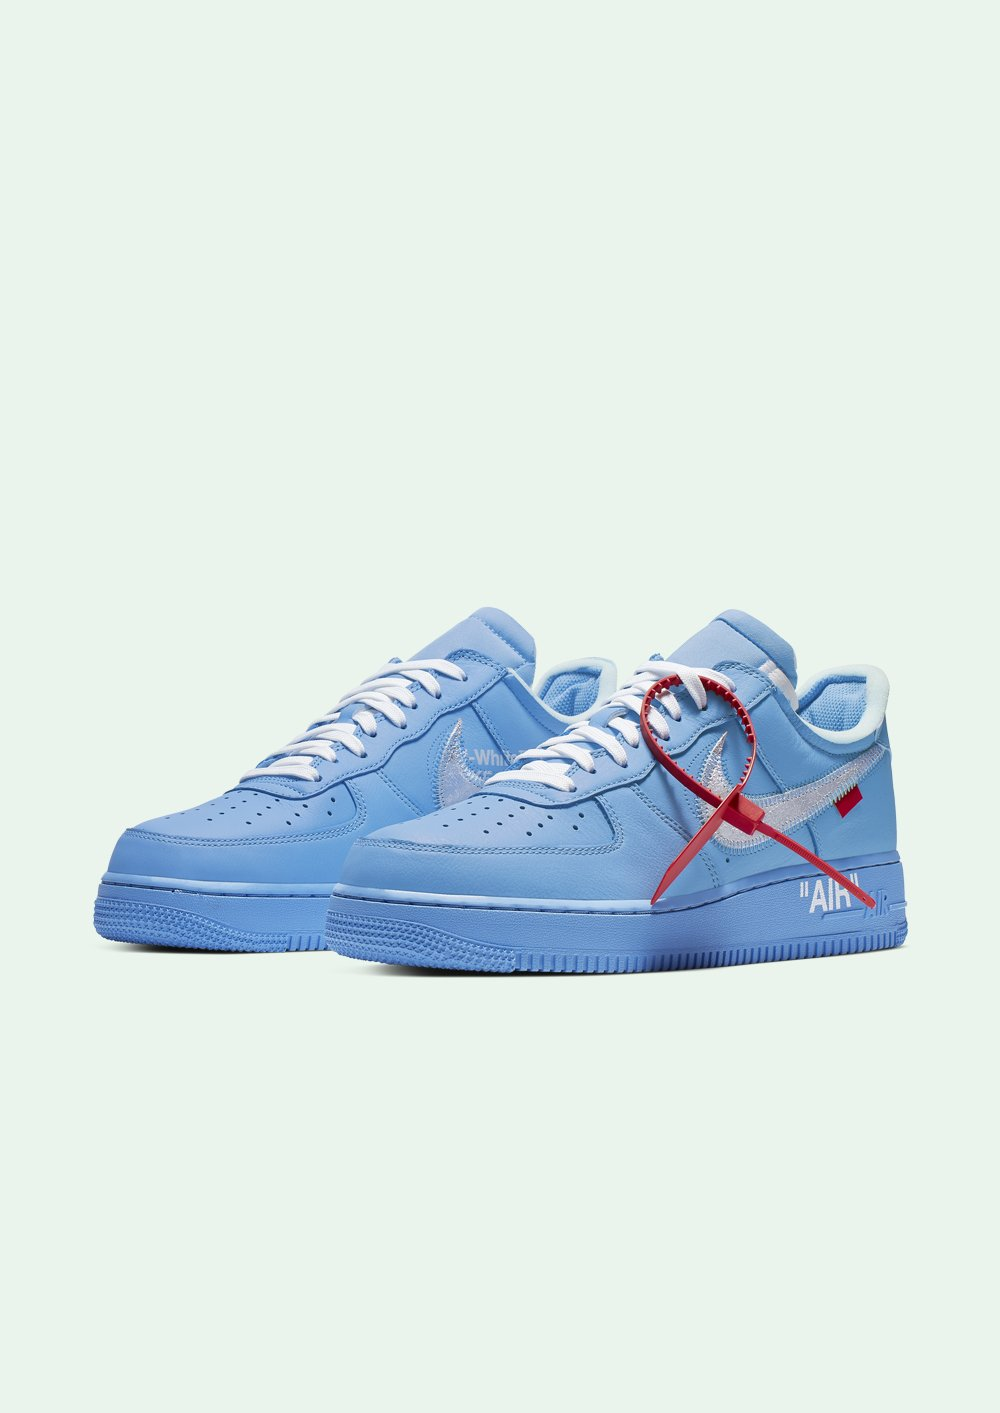 Off White X Nike Air Force 1 Mca Blue White Air Force 1 Off White Shoes Dream Shoes